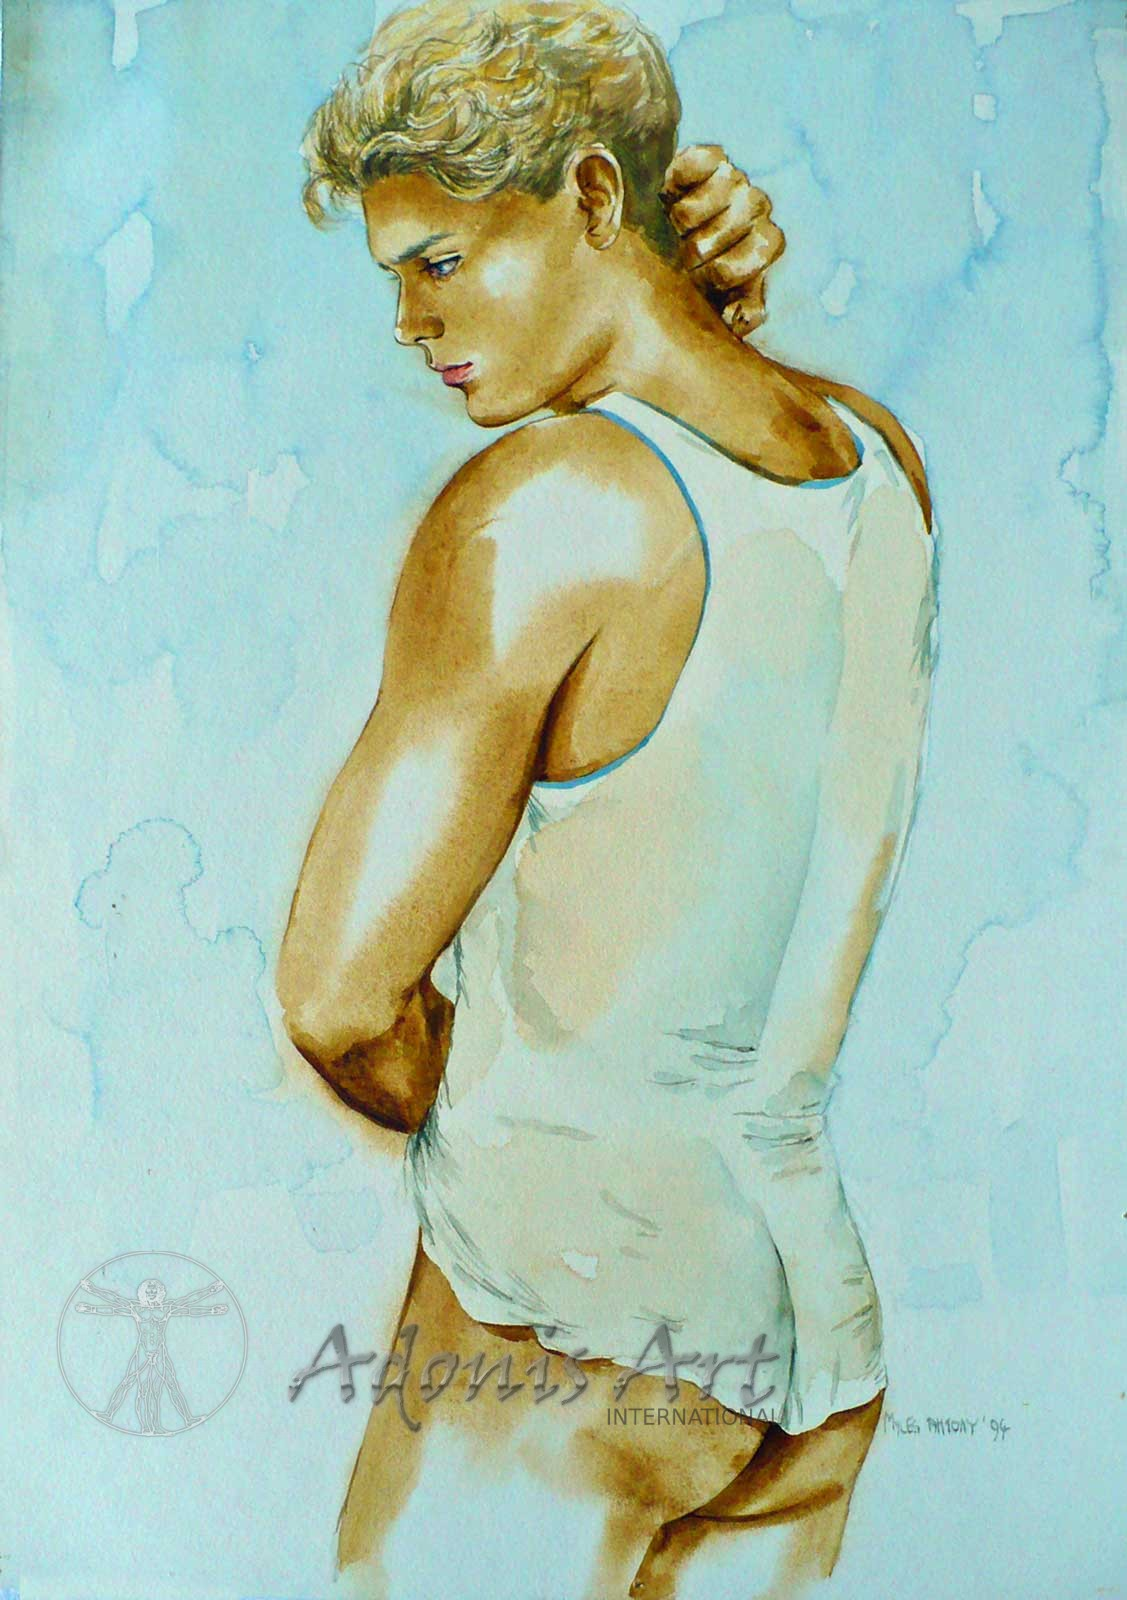 'In his Vest' watercolour painting by Myles Antony